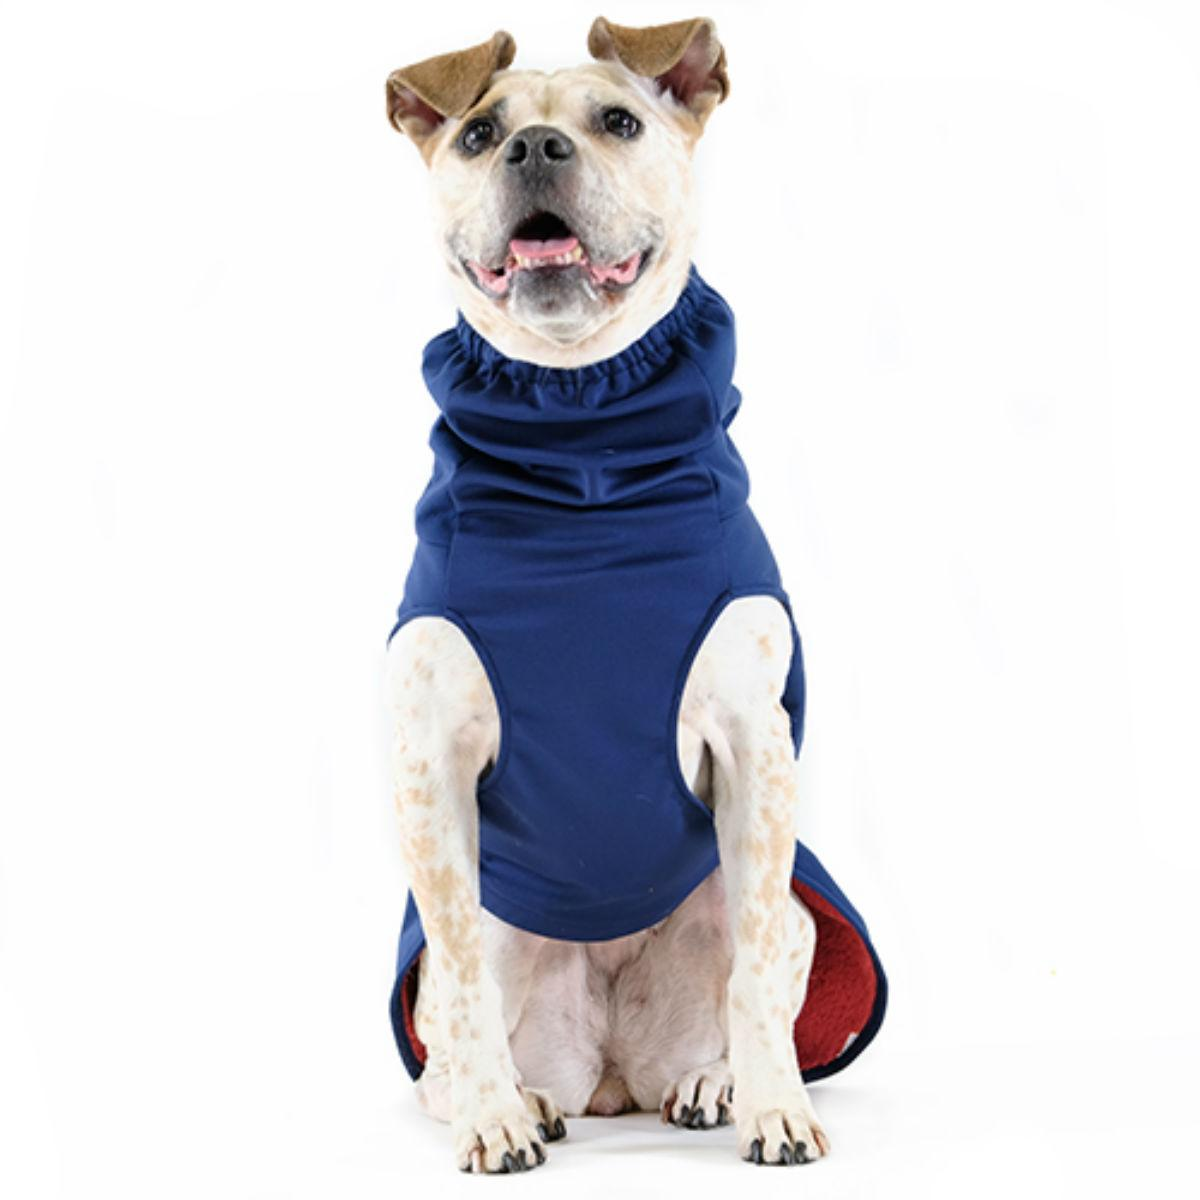 Winter Paw Dog Coat by Gold Paw - Navy with Red